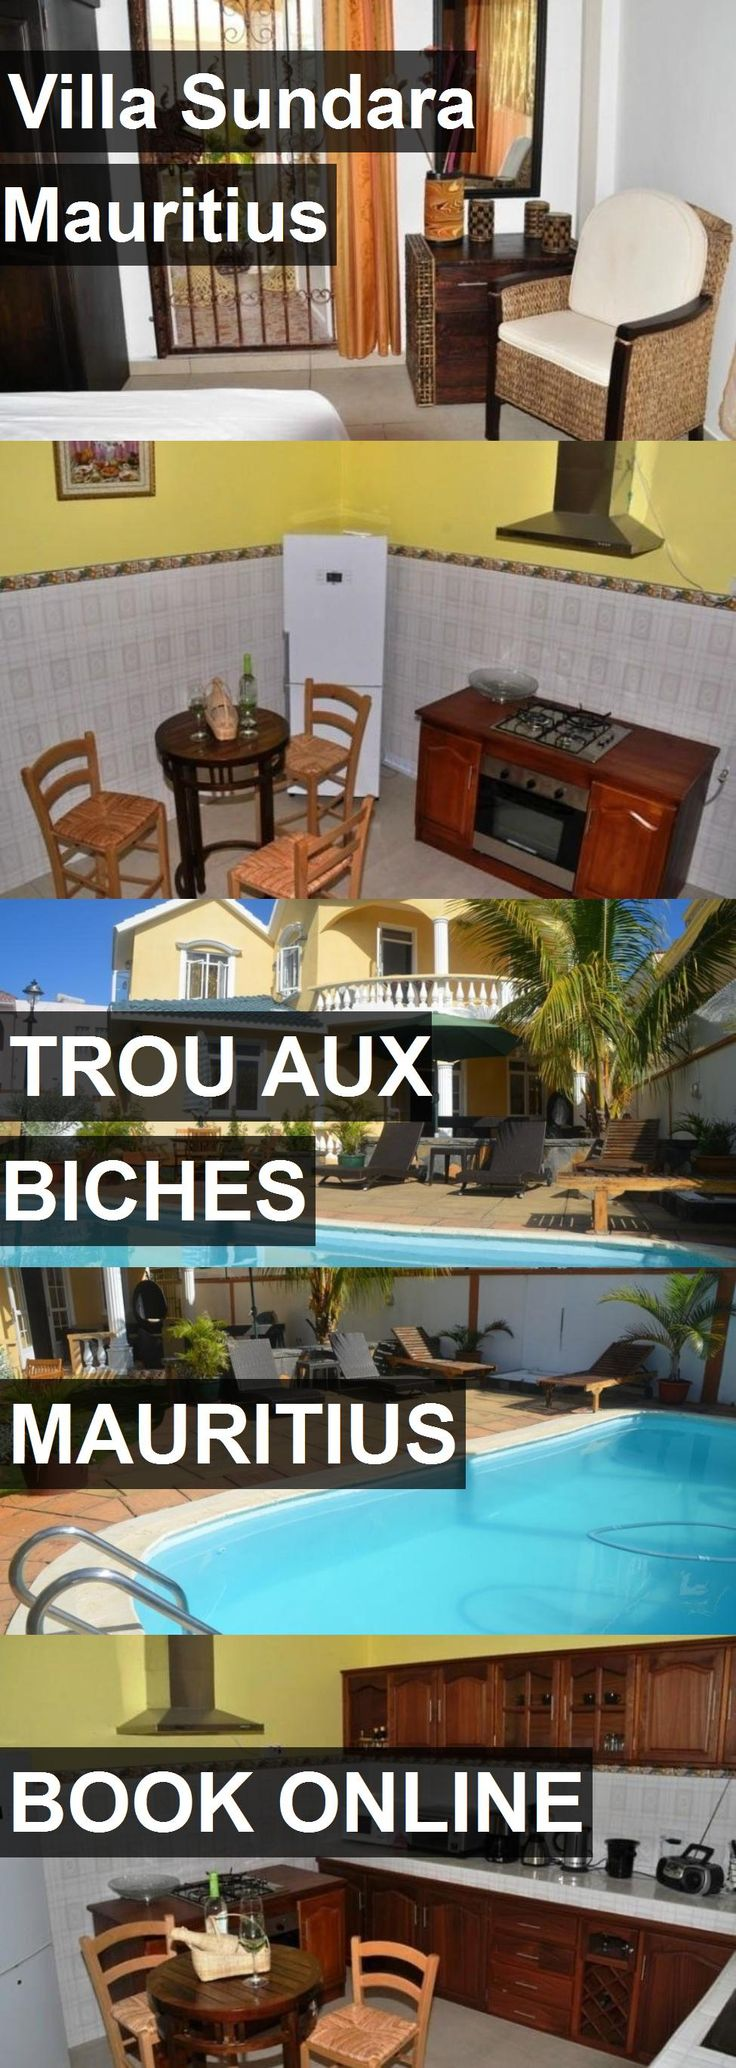 Hotel Villa Sundara Mauritius in Trou aux Biches, Mauritius. For more information, photos, reviews and best prices please follow the link. #Mauritius #TrouauxBiches #VillaSundaraMauritius #hotel #travel #vacation